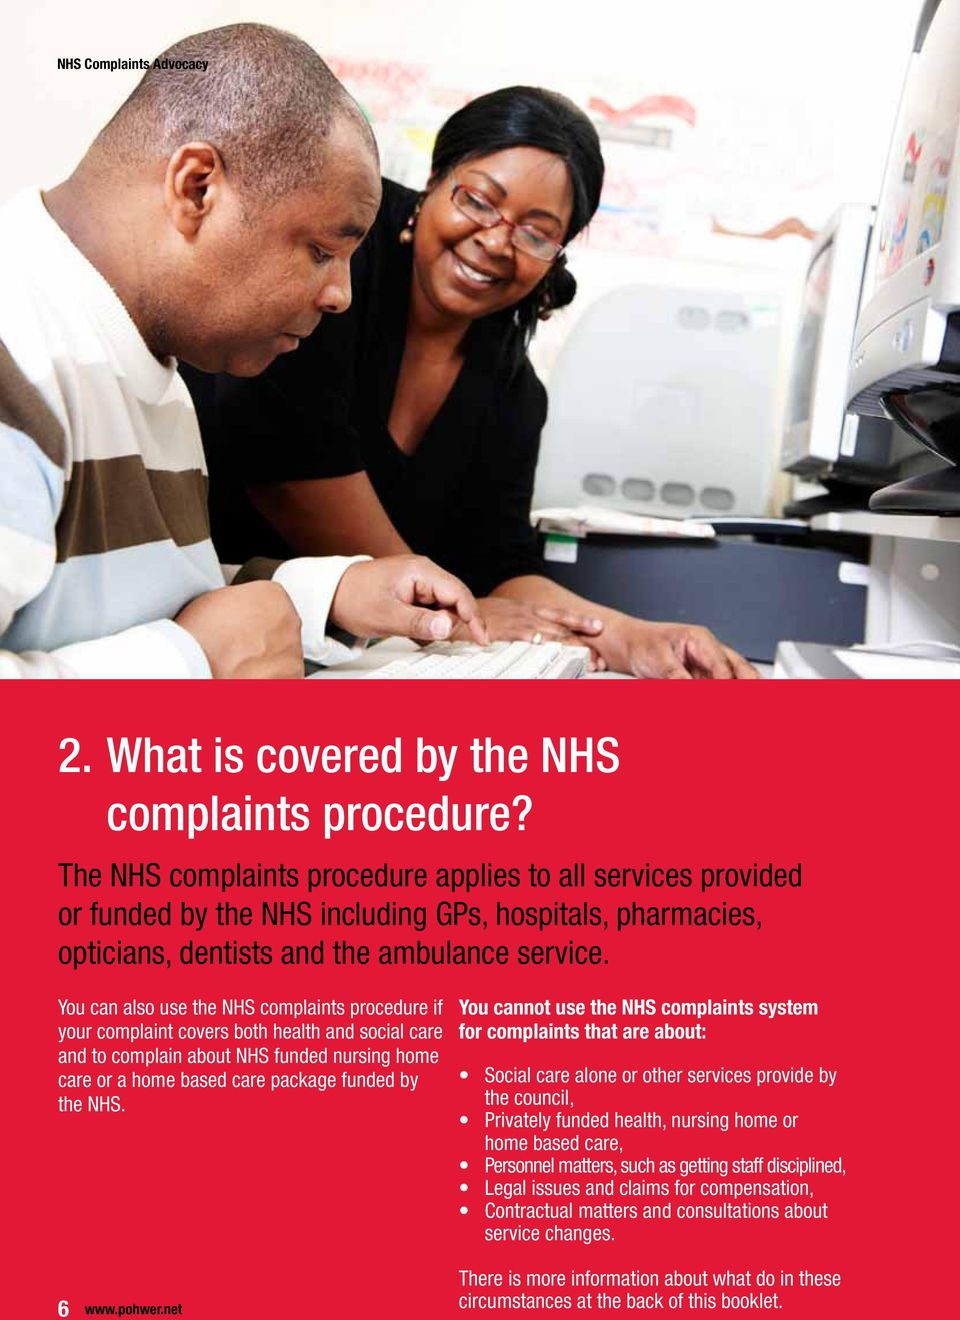 You can also use the NHS complaints procedure if your complaint covers both health and social care and to complain about NHS funded nursing home care or a home based care package funded by the NHS.